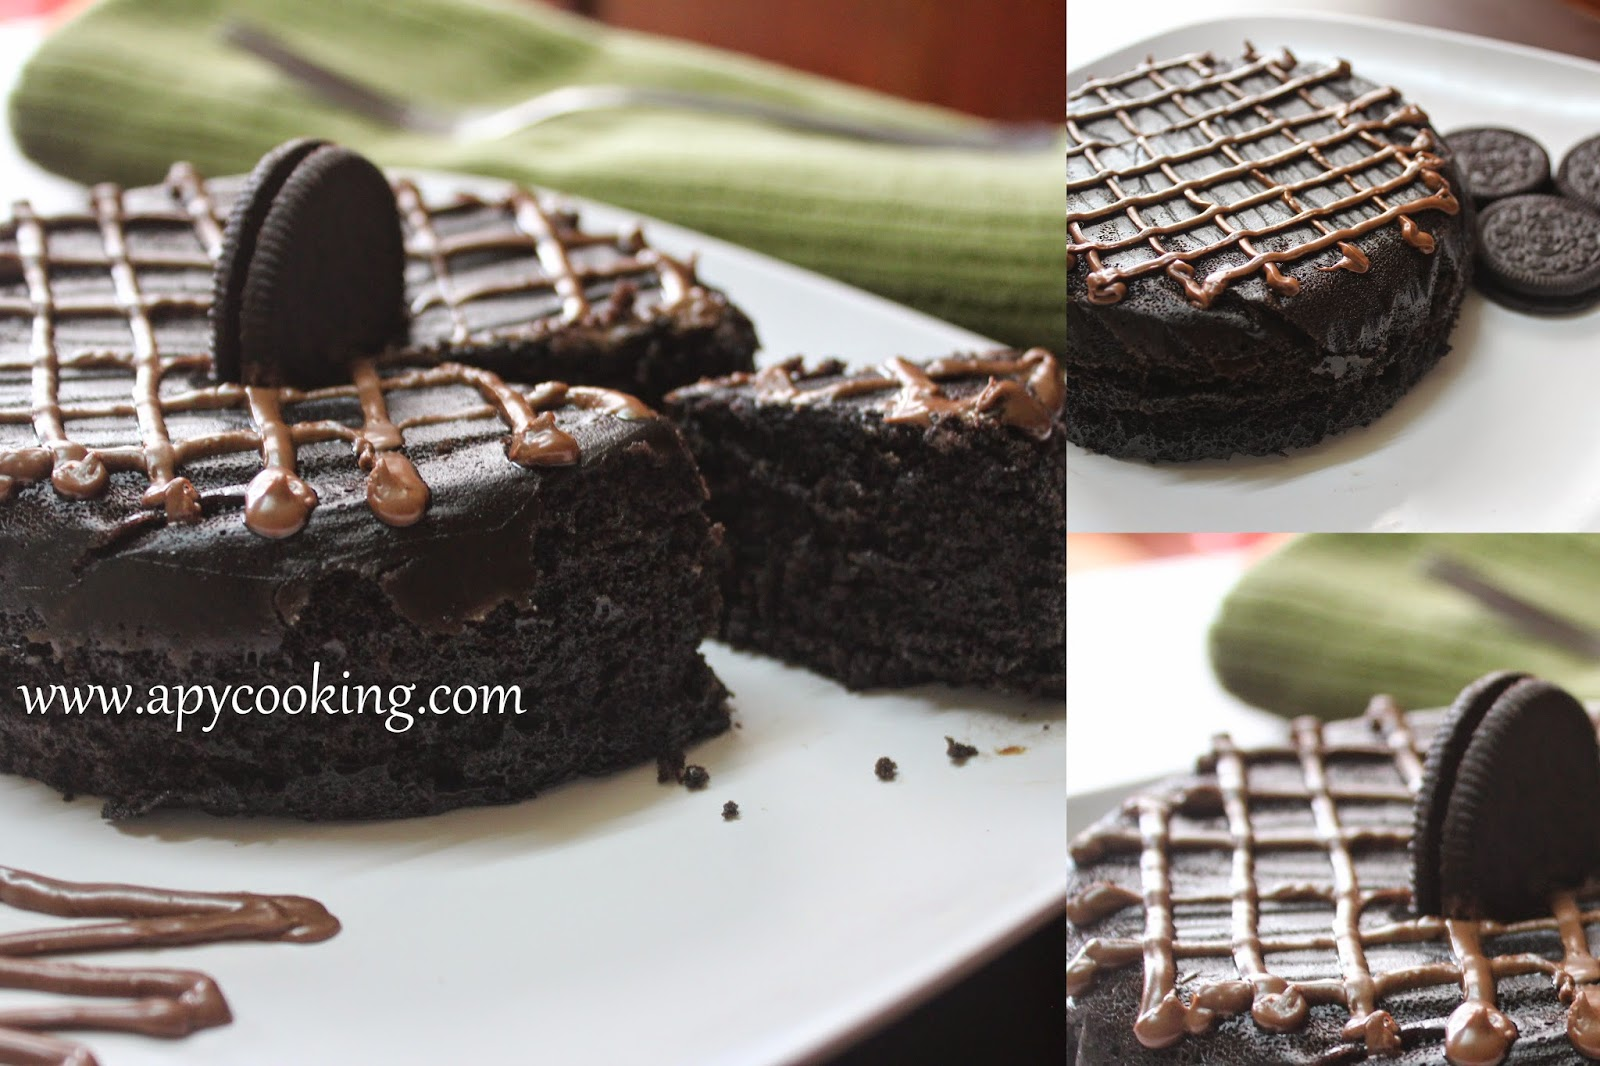 Simple Cake Recipes In Microwave Oven: Apy Cooking: Super Easy 5 Minute Eggless Microwave Oreo